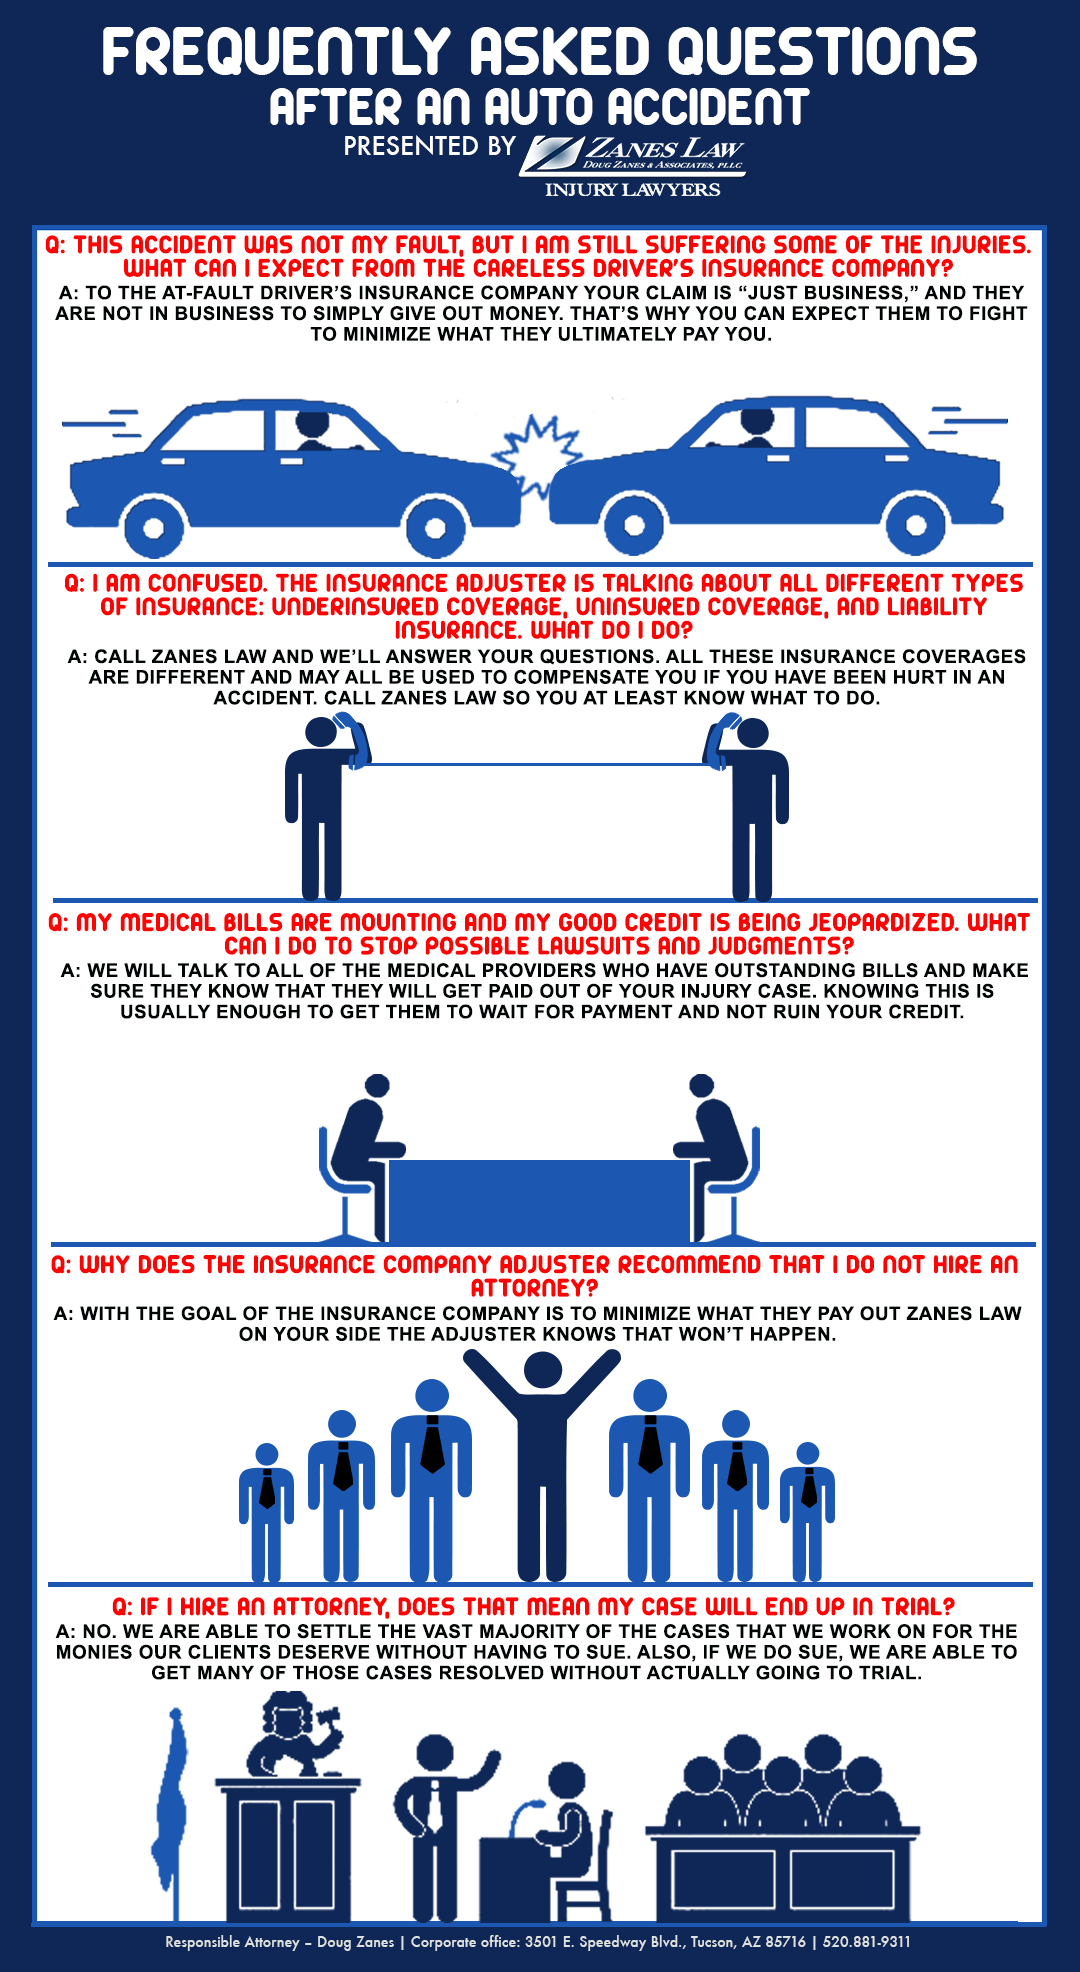 Frequently Asked Questions After An Auto Accident Infographic